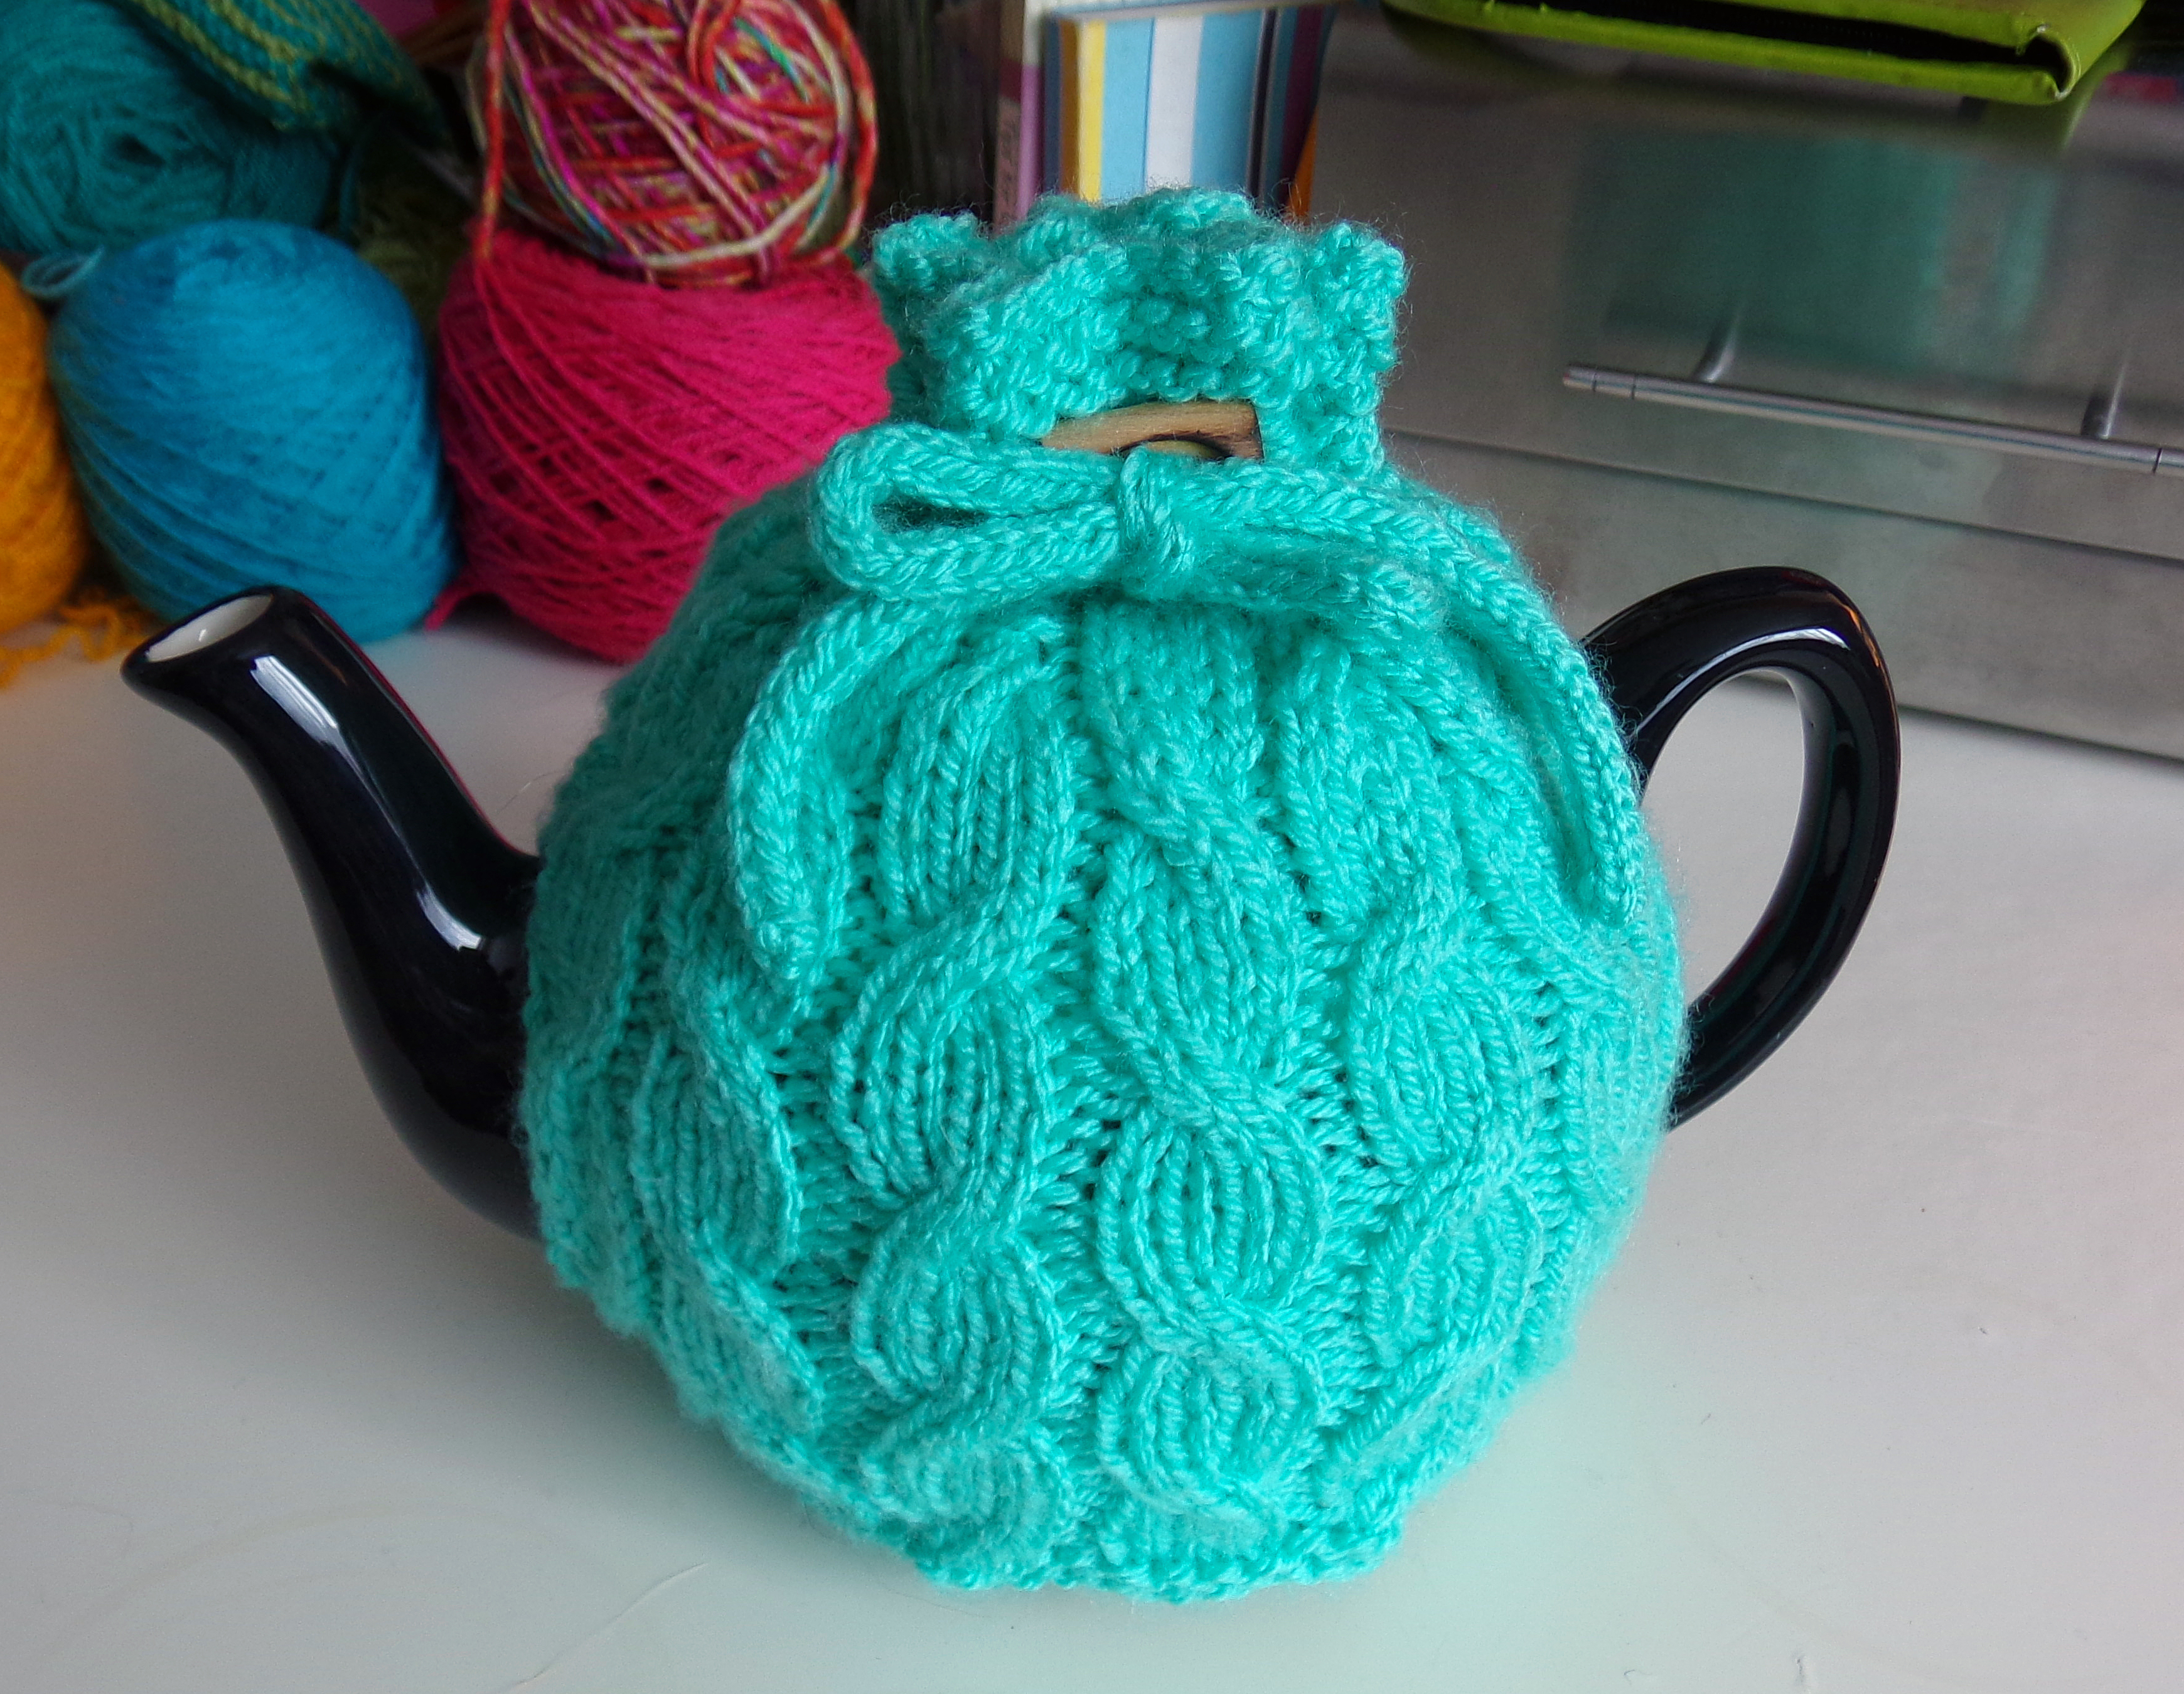 Knitted Tea Cosy Pattern Easy Three Free Tea Cosy Patterns Reviewed Or Why Tea Pots Are Better